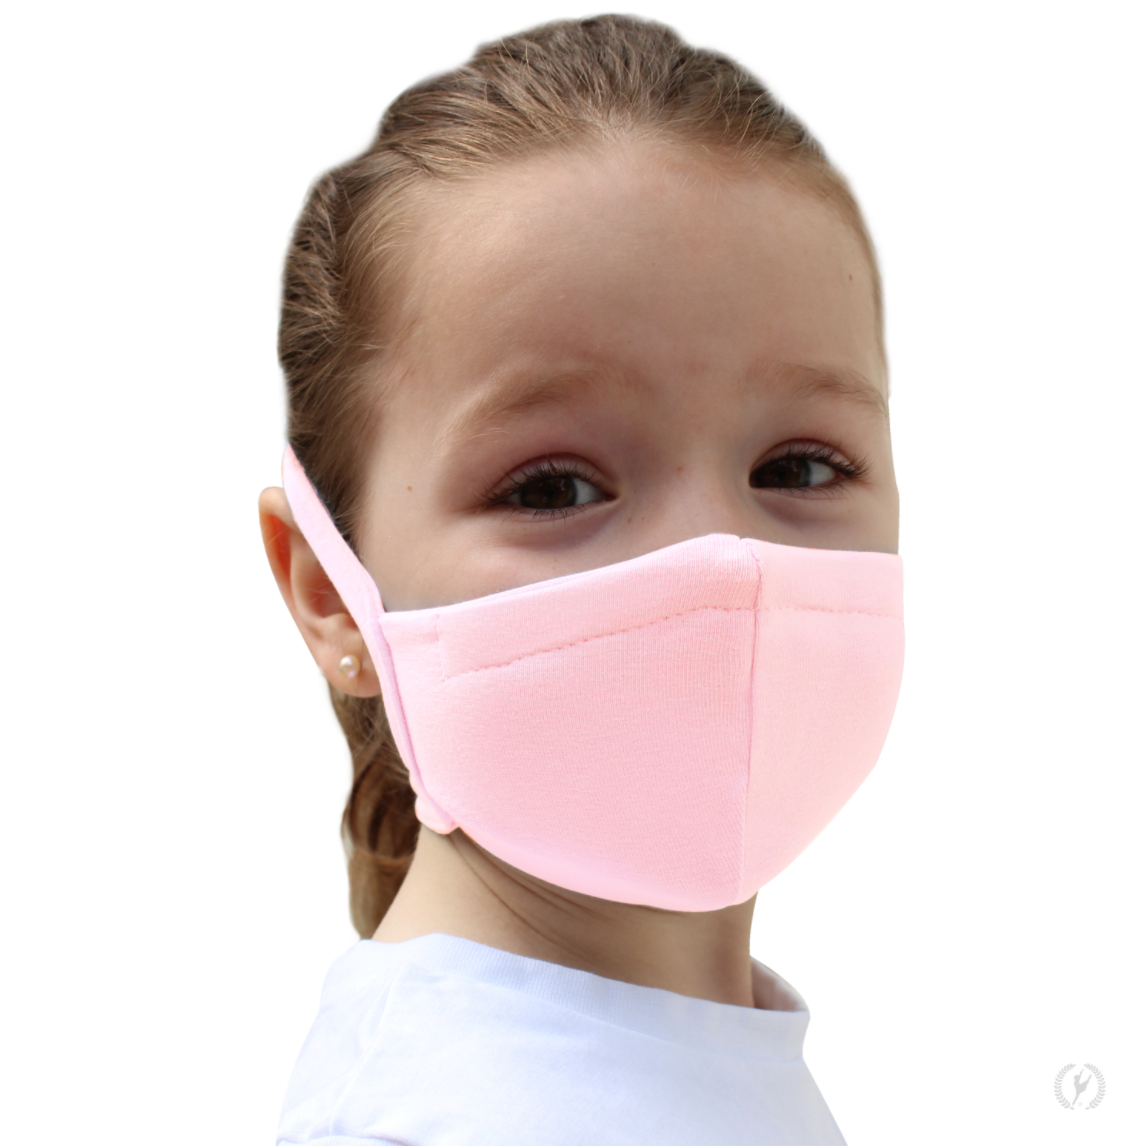 Child size cotton cloth face masks and face coverings